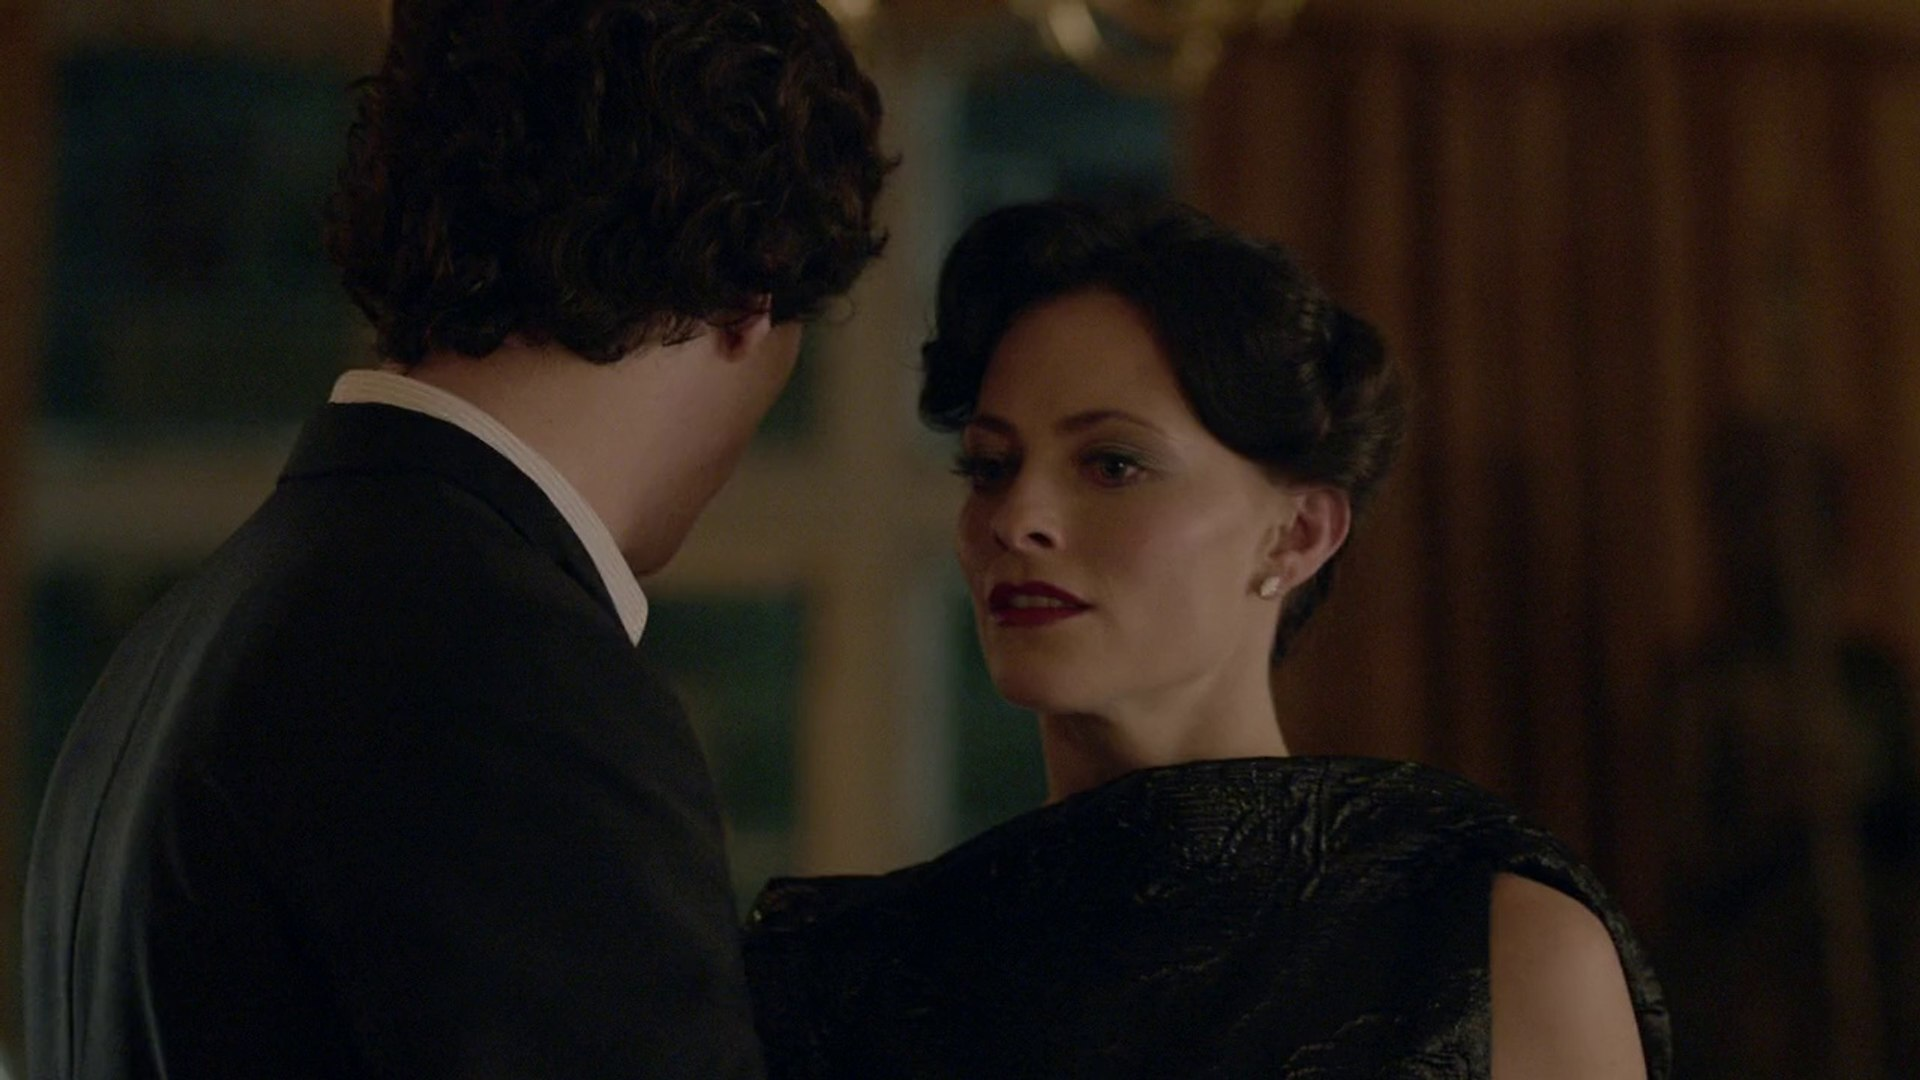 THE woman - Irene Adler by Lara Pulver in S02E01